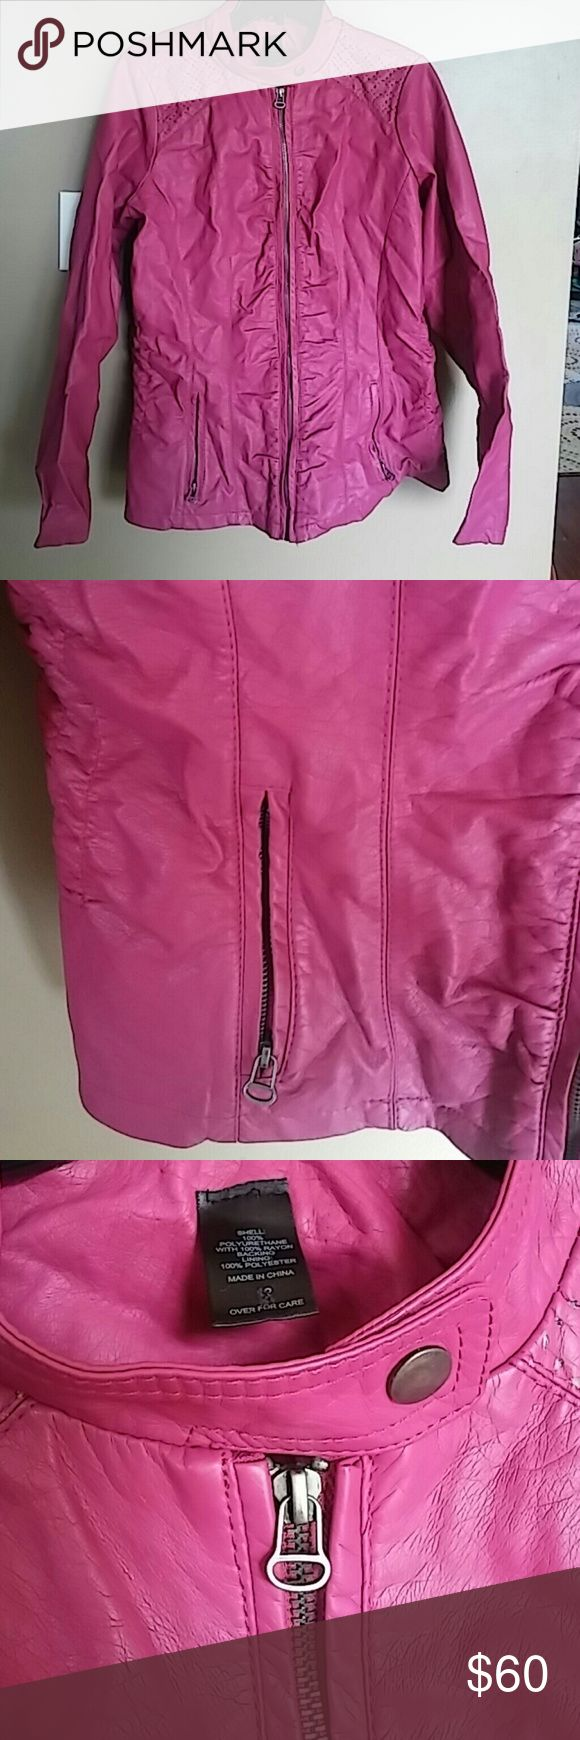 Gorgeous Plum-Pink Faux Leather Jacket This listing is for a gorgeous plum pink color faux leather jacket. The jacket is motorcycle style with a snap at the color. The front jacket has two zipper pockets. Shoulders have a lined vinted hole design. Material shell is polyurethane with 100% Rayon Backing Lining: 100% Polyester. The tag says a size 12 and the measurements are Shoulder to hem 26 in. and Armpit to Armpit 23 1/2 in.. This jacket was worn less than a handful of times by my sister…